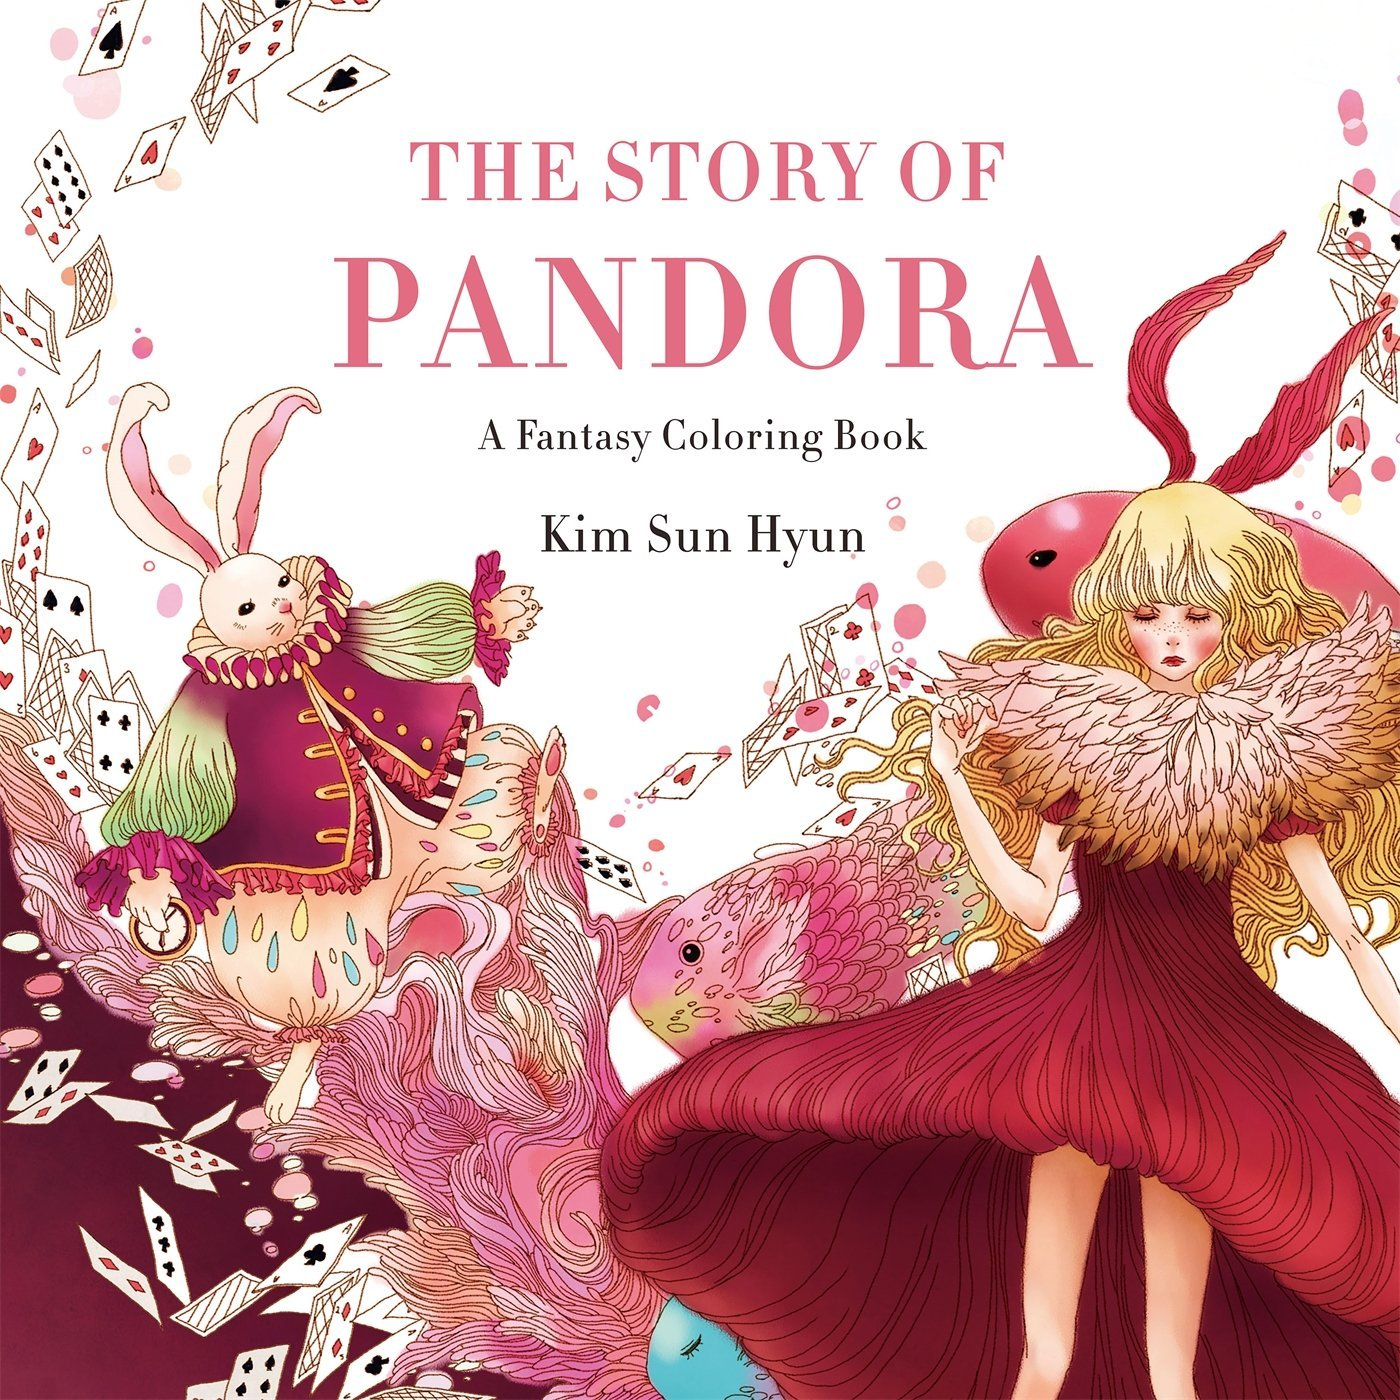 The Story of Pandora: A Fantasy Coloring Book - Kim Sun Hyun & Song Geum Jin